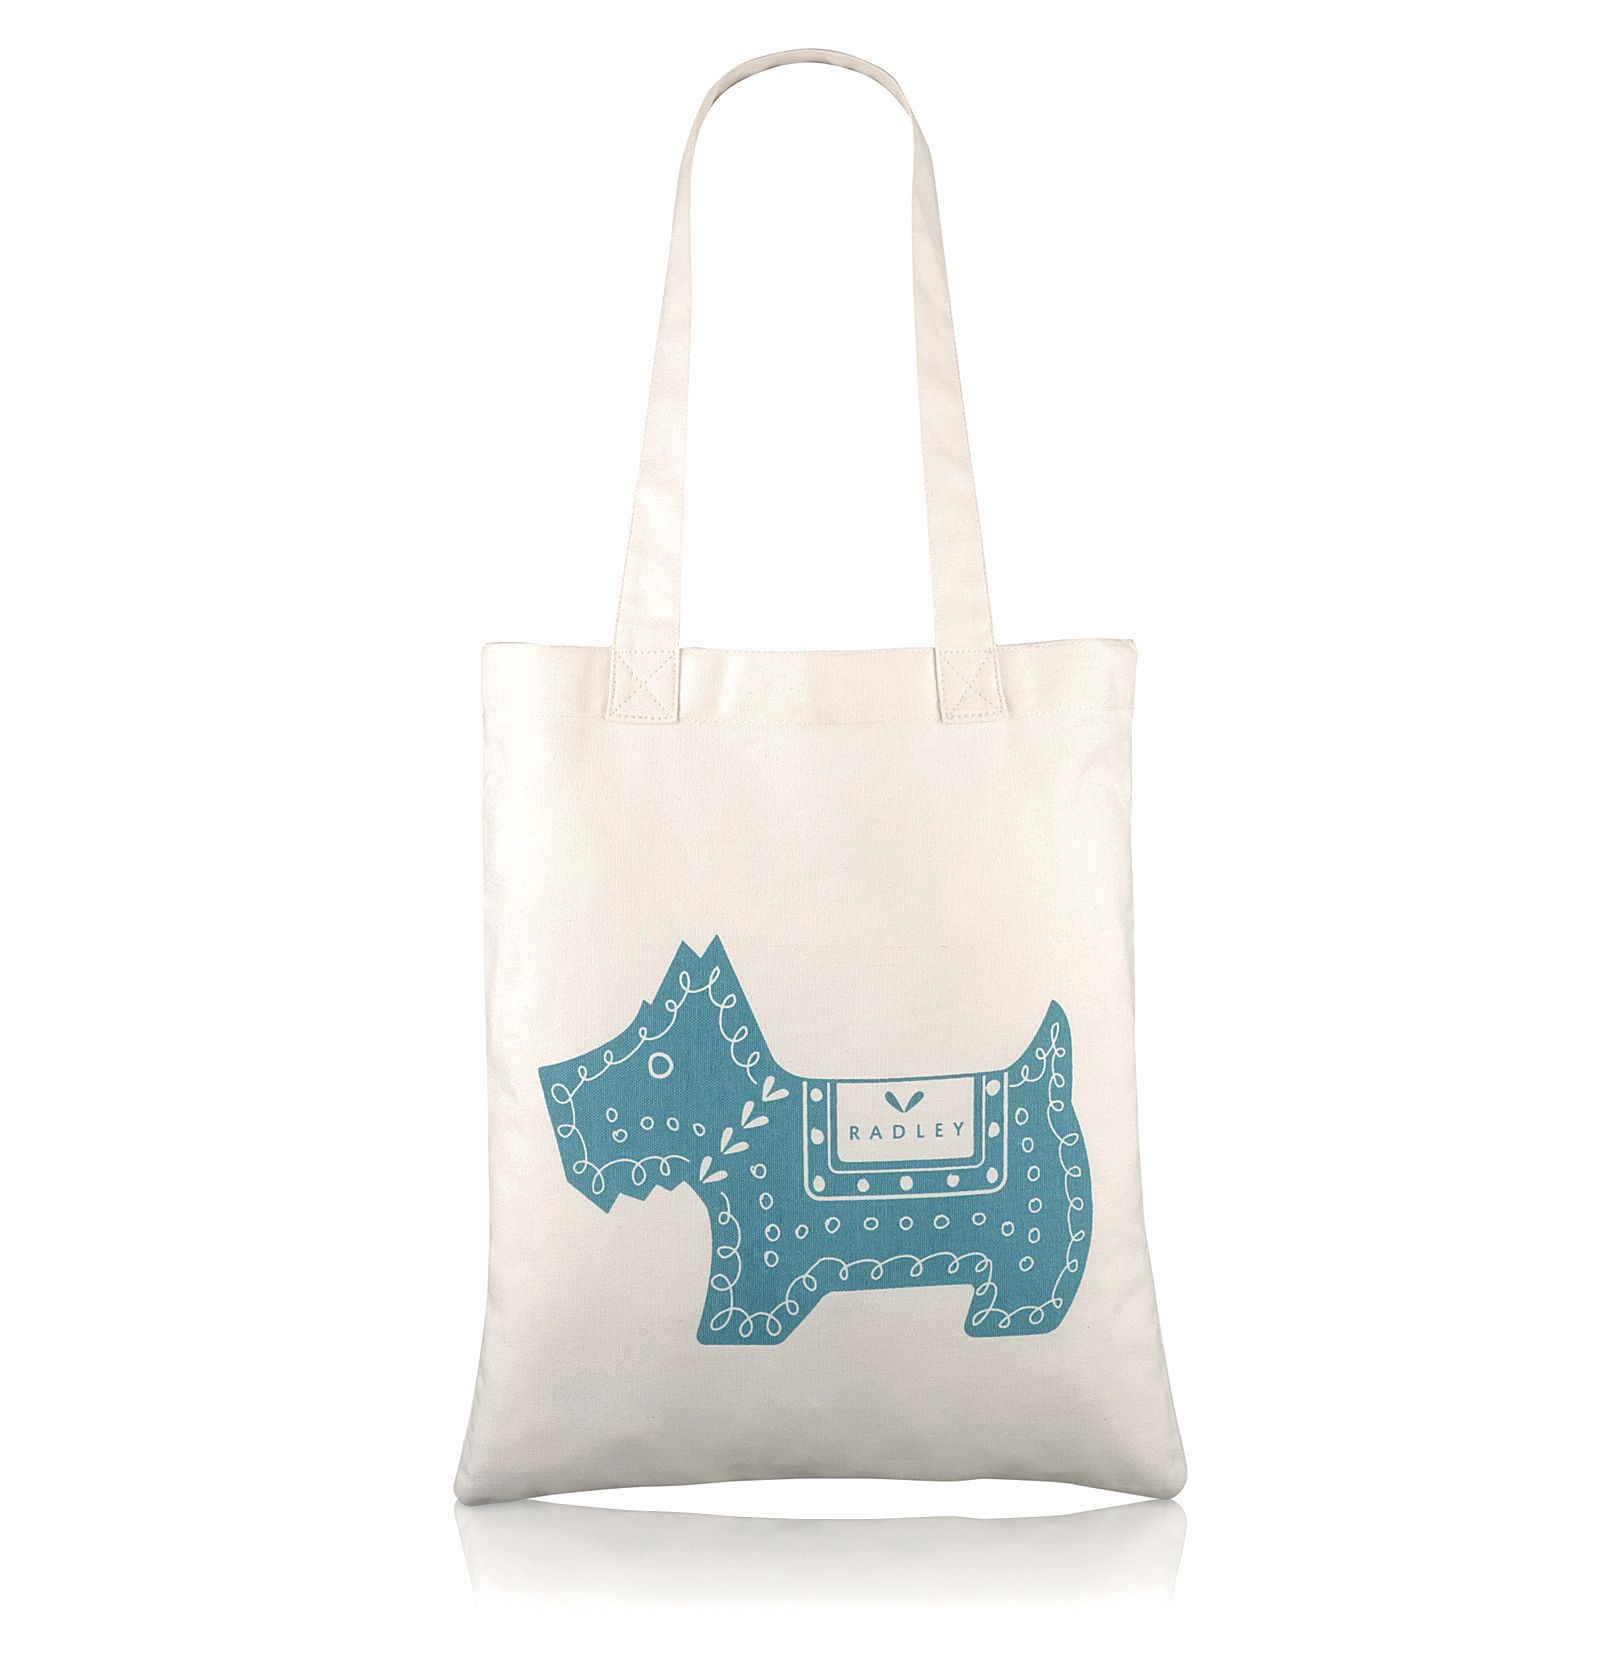 Dala dog blue tote bag